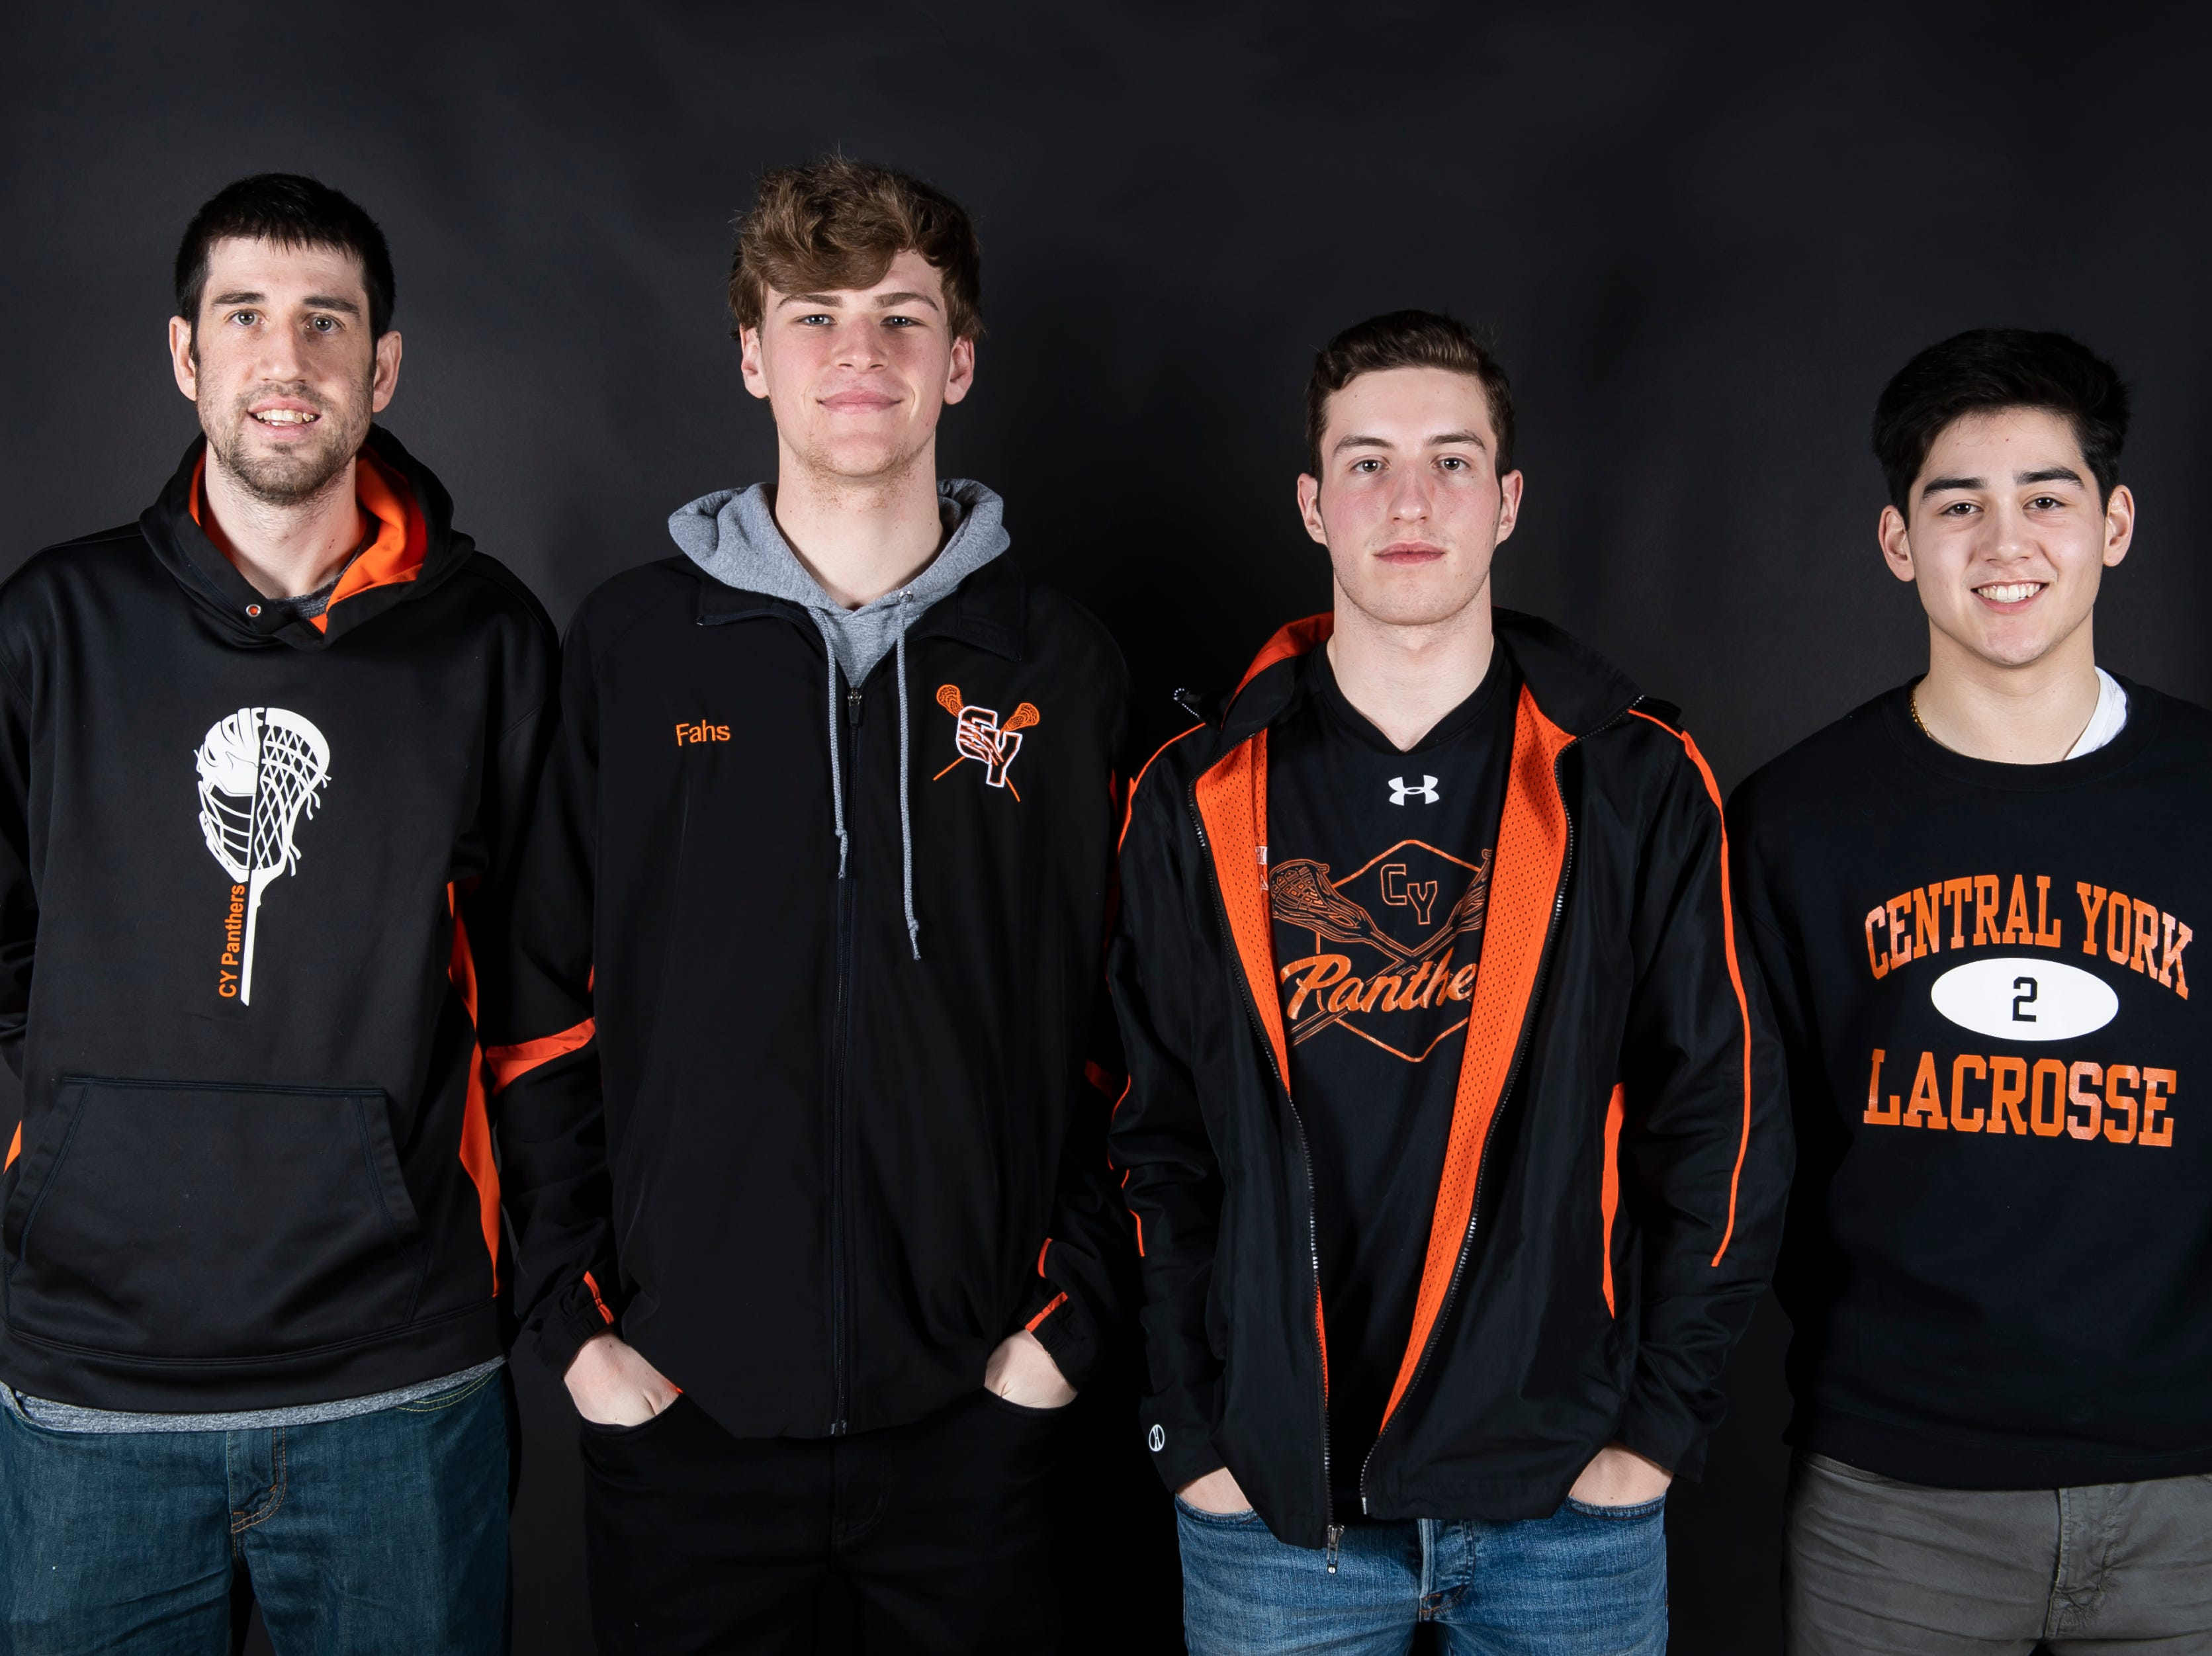 (From left) Central York lacrosse's coach Ryan Muller, Ryan Fans, Aaron Czech and Drake Little pose in the GameTimePA photo booth during spring sports media day in York Sunday, March 10, 2019.